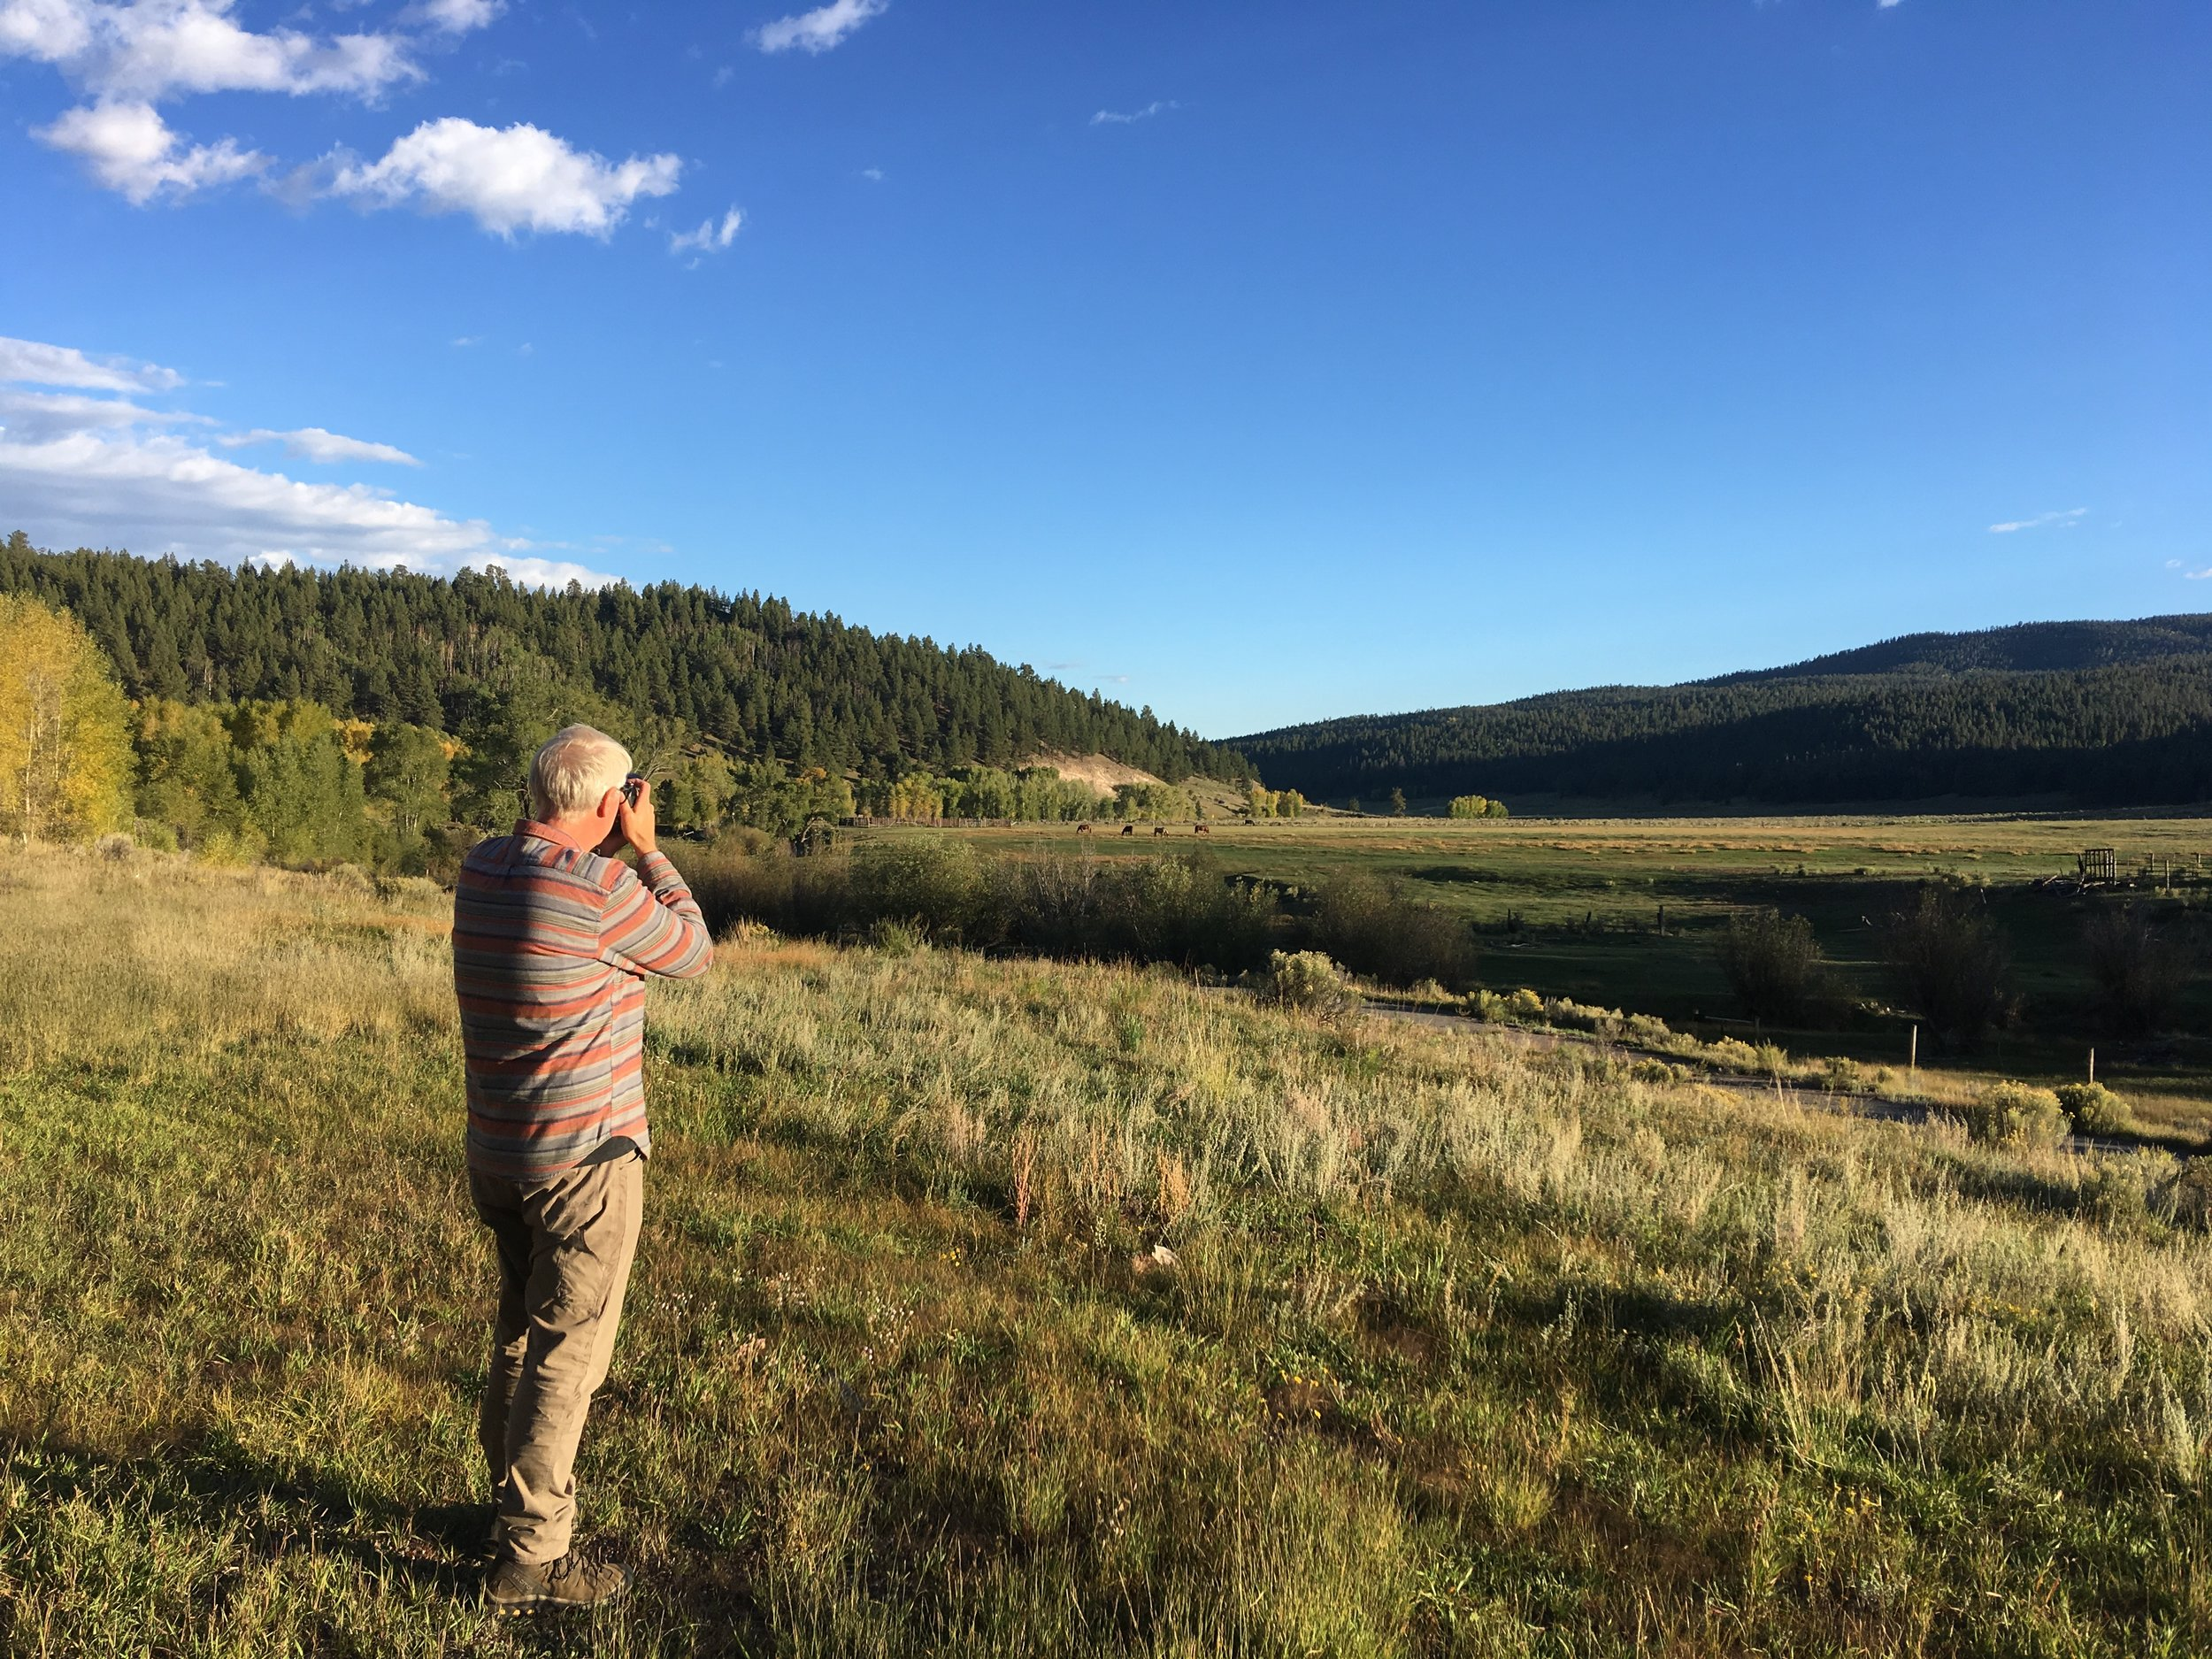 Jim taking photos at golden hour in northern New Mexico